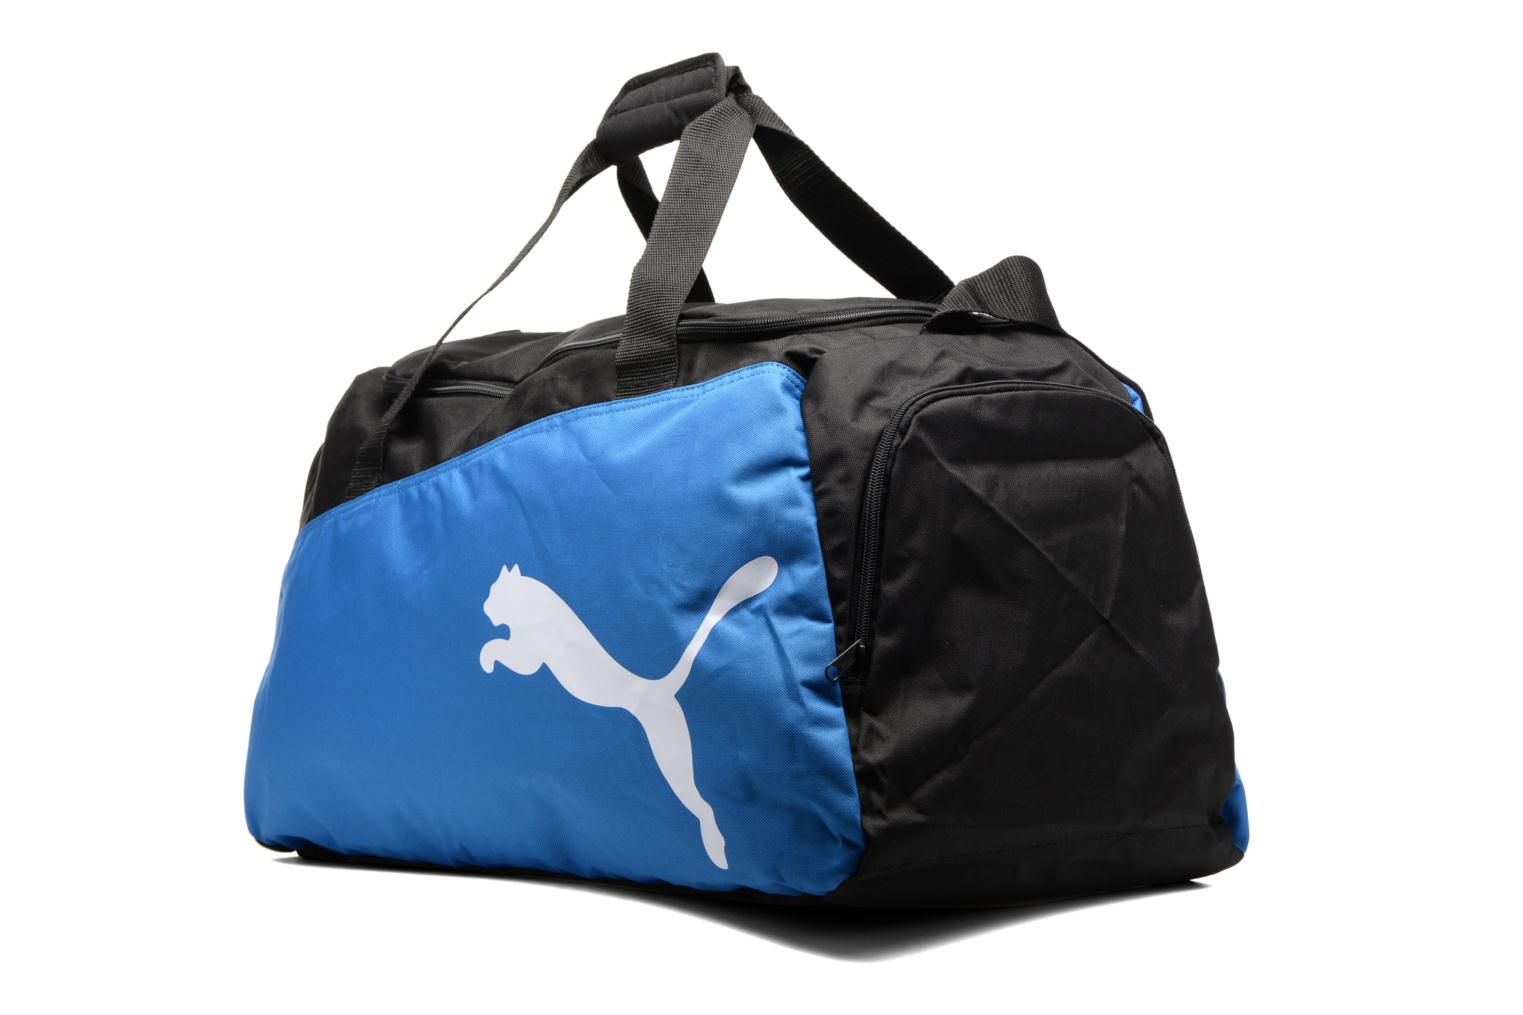 M puma white black Training Bag Pro Puma royal nxUZAt